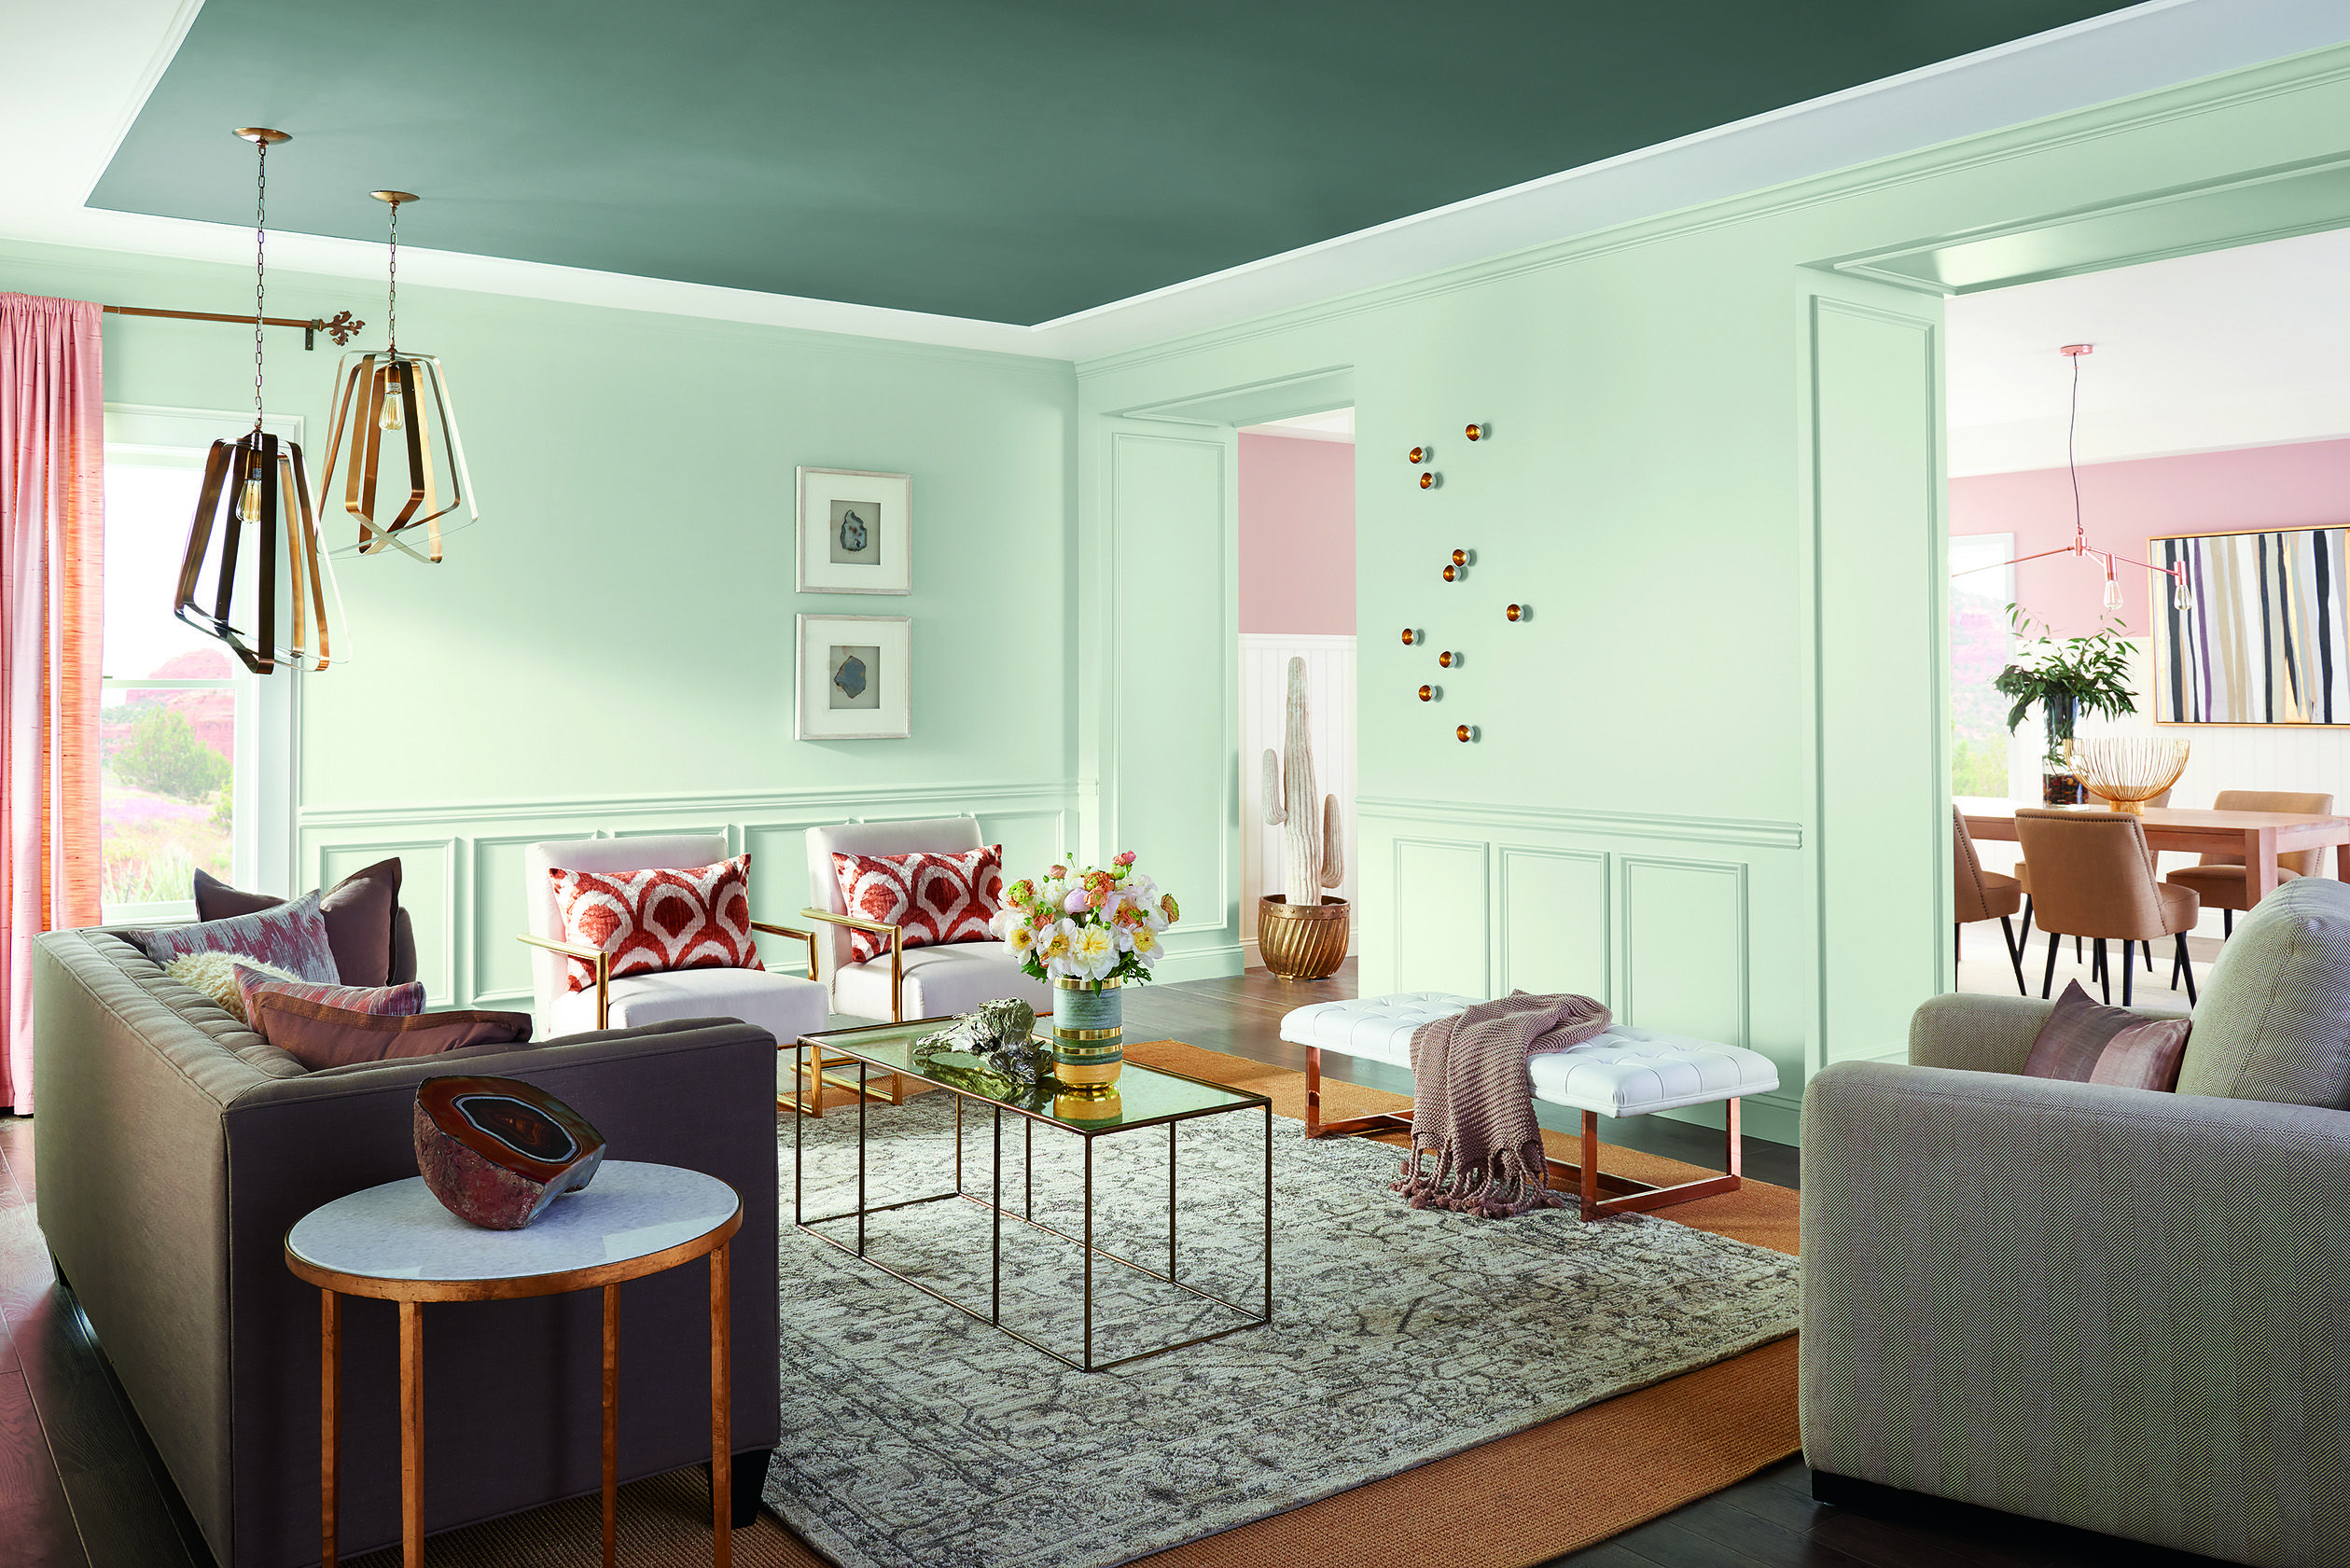 Color Trends 2018 & The 2018 Color Trends - Sherwin Williams